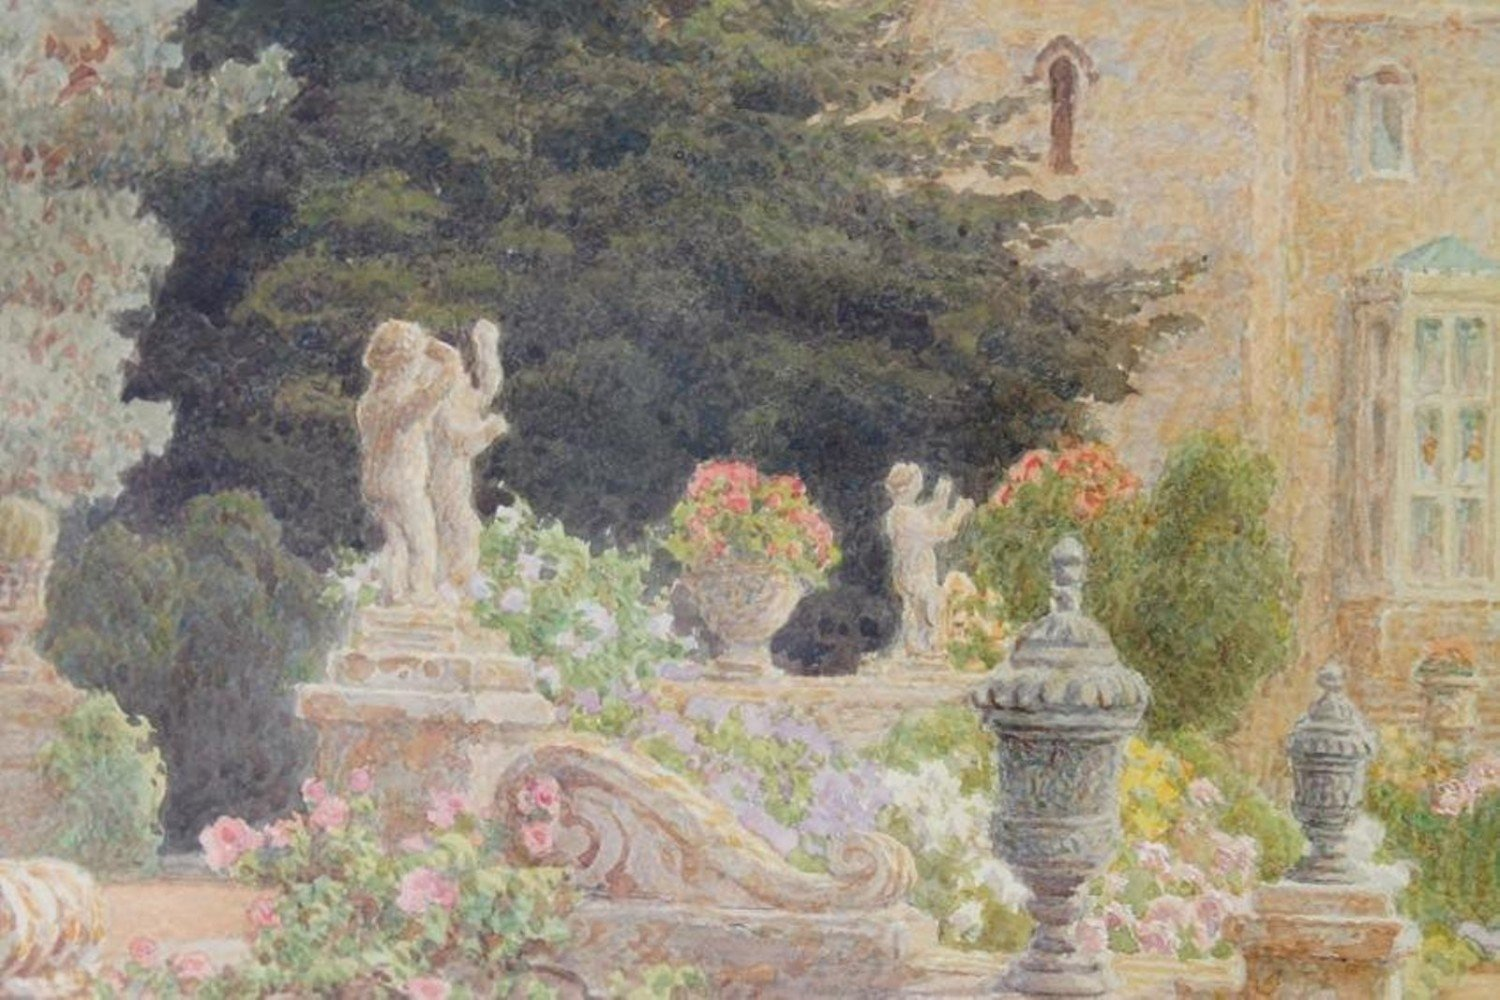 Thomas Henry Hunn (British 1857-1928)  Wilton, Garden Steps with Outdoor Sculpture and View to the House